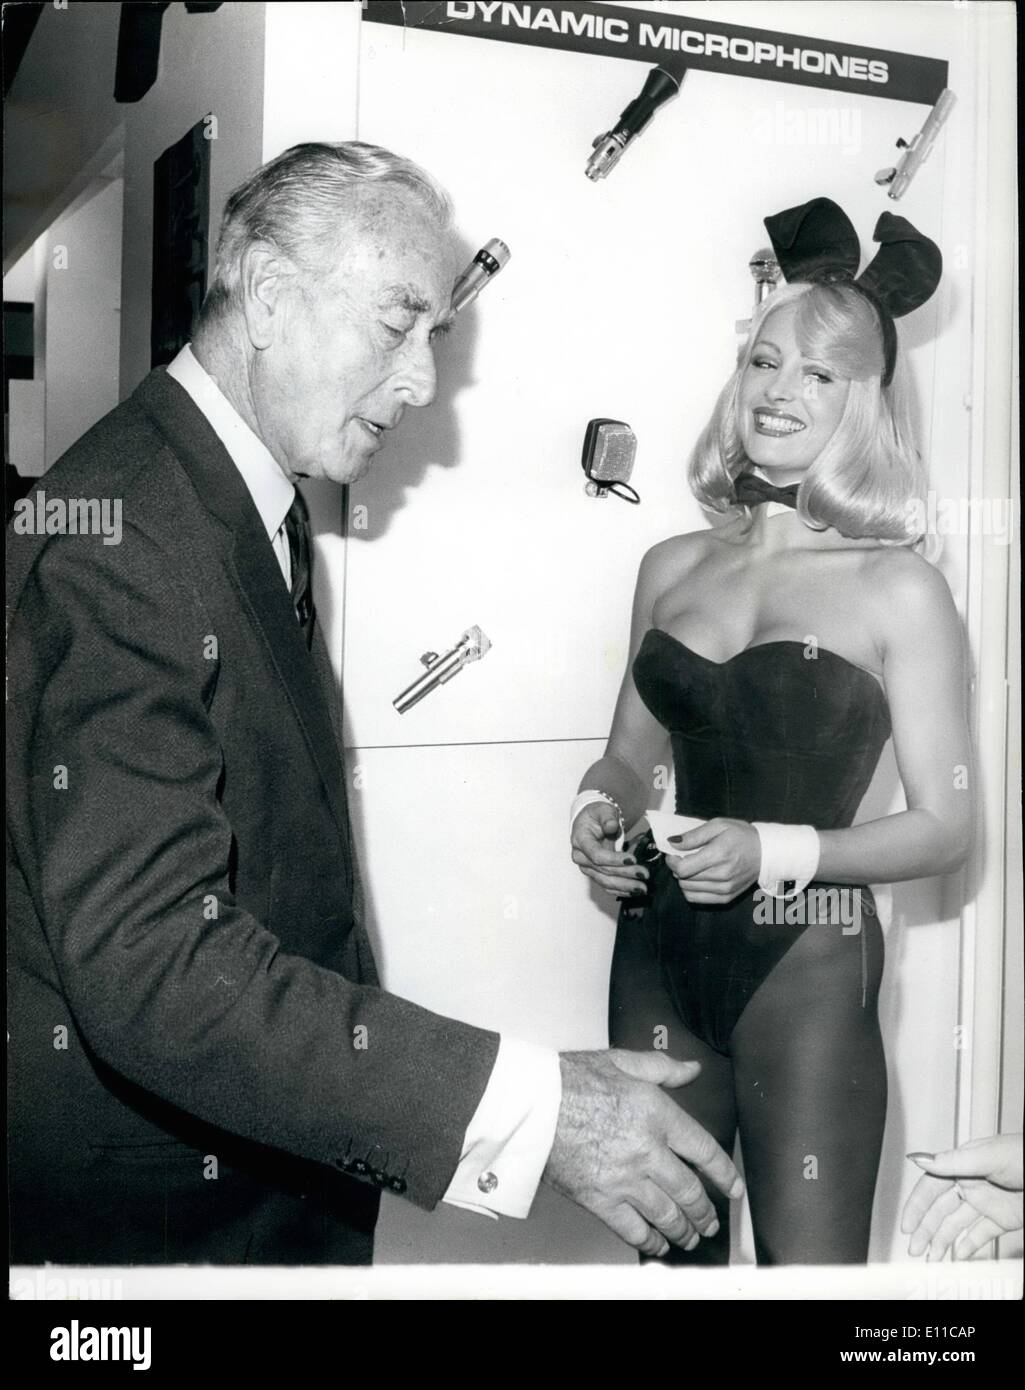 Sep. 09, 1976 - Earl Mountbatten Opens the 6th International Broadcasting Exhibition at Grosvernor House. Photo Shows: Earl Mountbatten during a tour of the exhibition stops to chat to Bunny Girl, Penny, who was present at one of the exhibition stands. - Stock Image